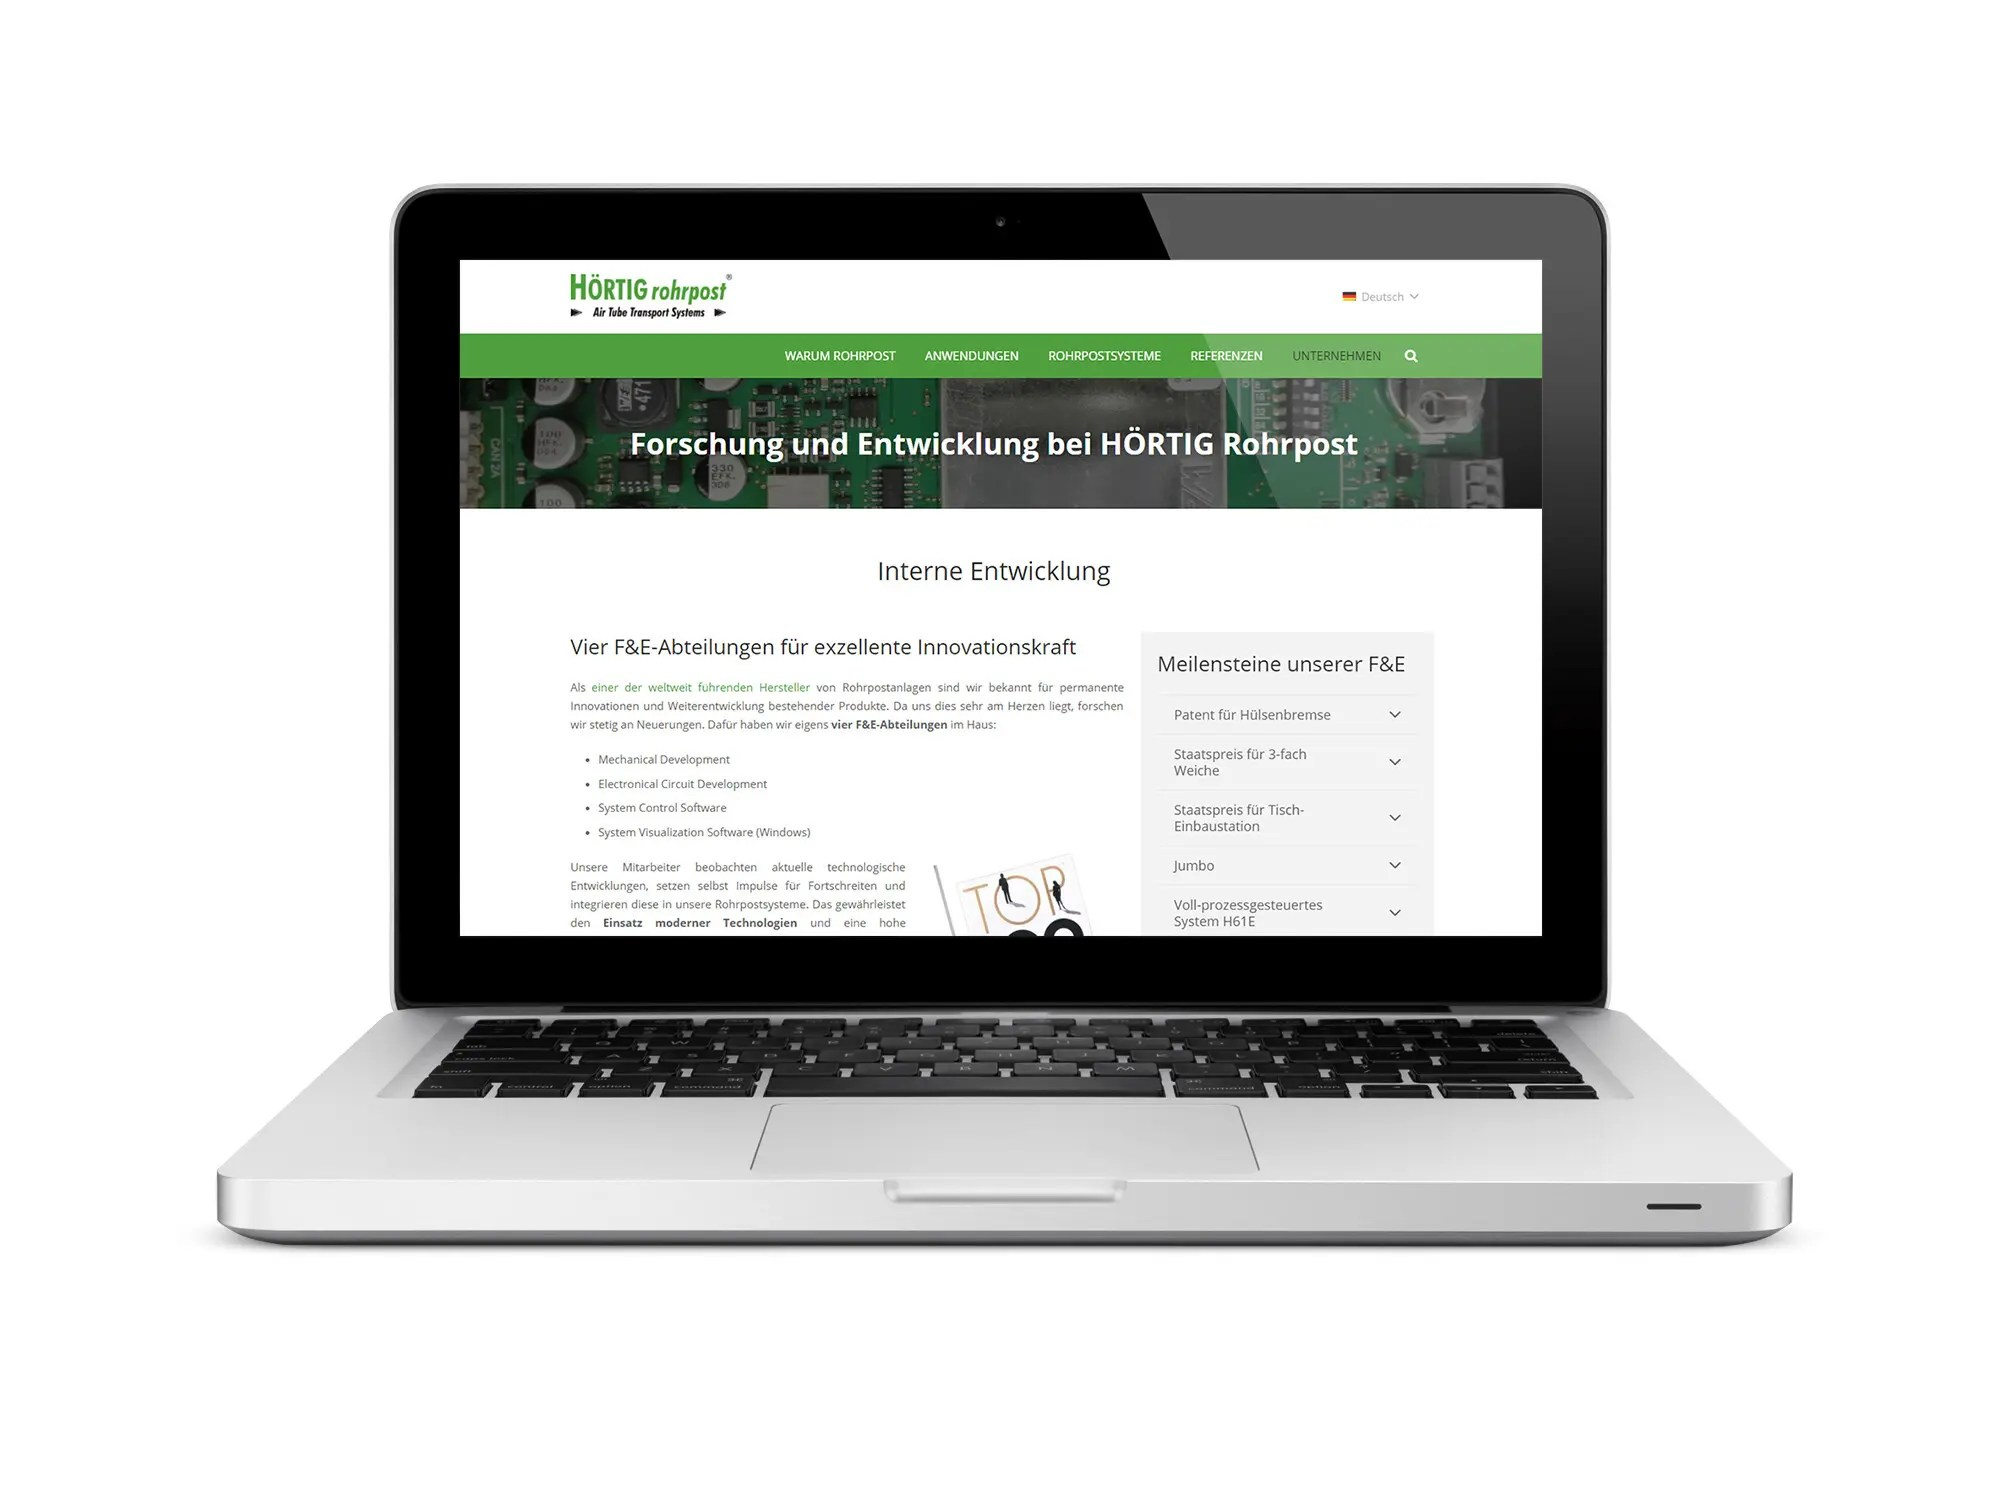 HÖRTIG Rohrpost Launches New Corporate Website